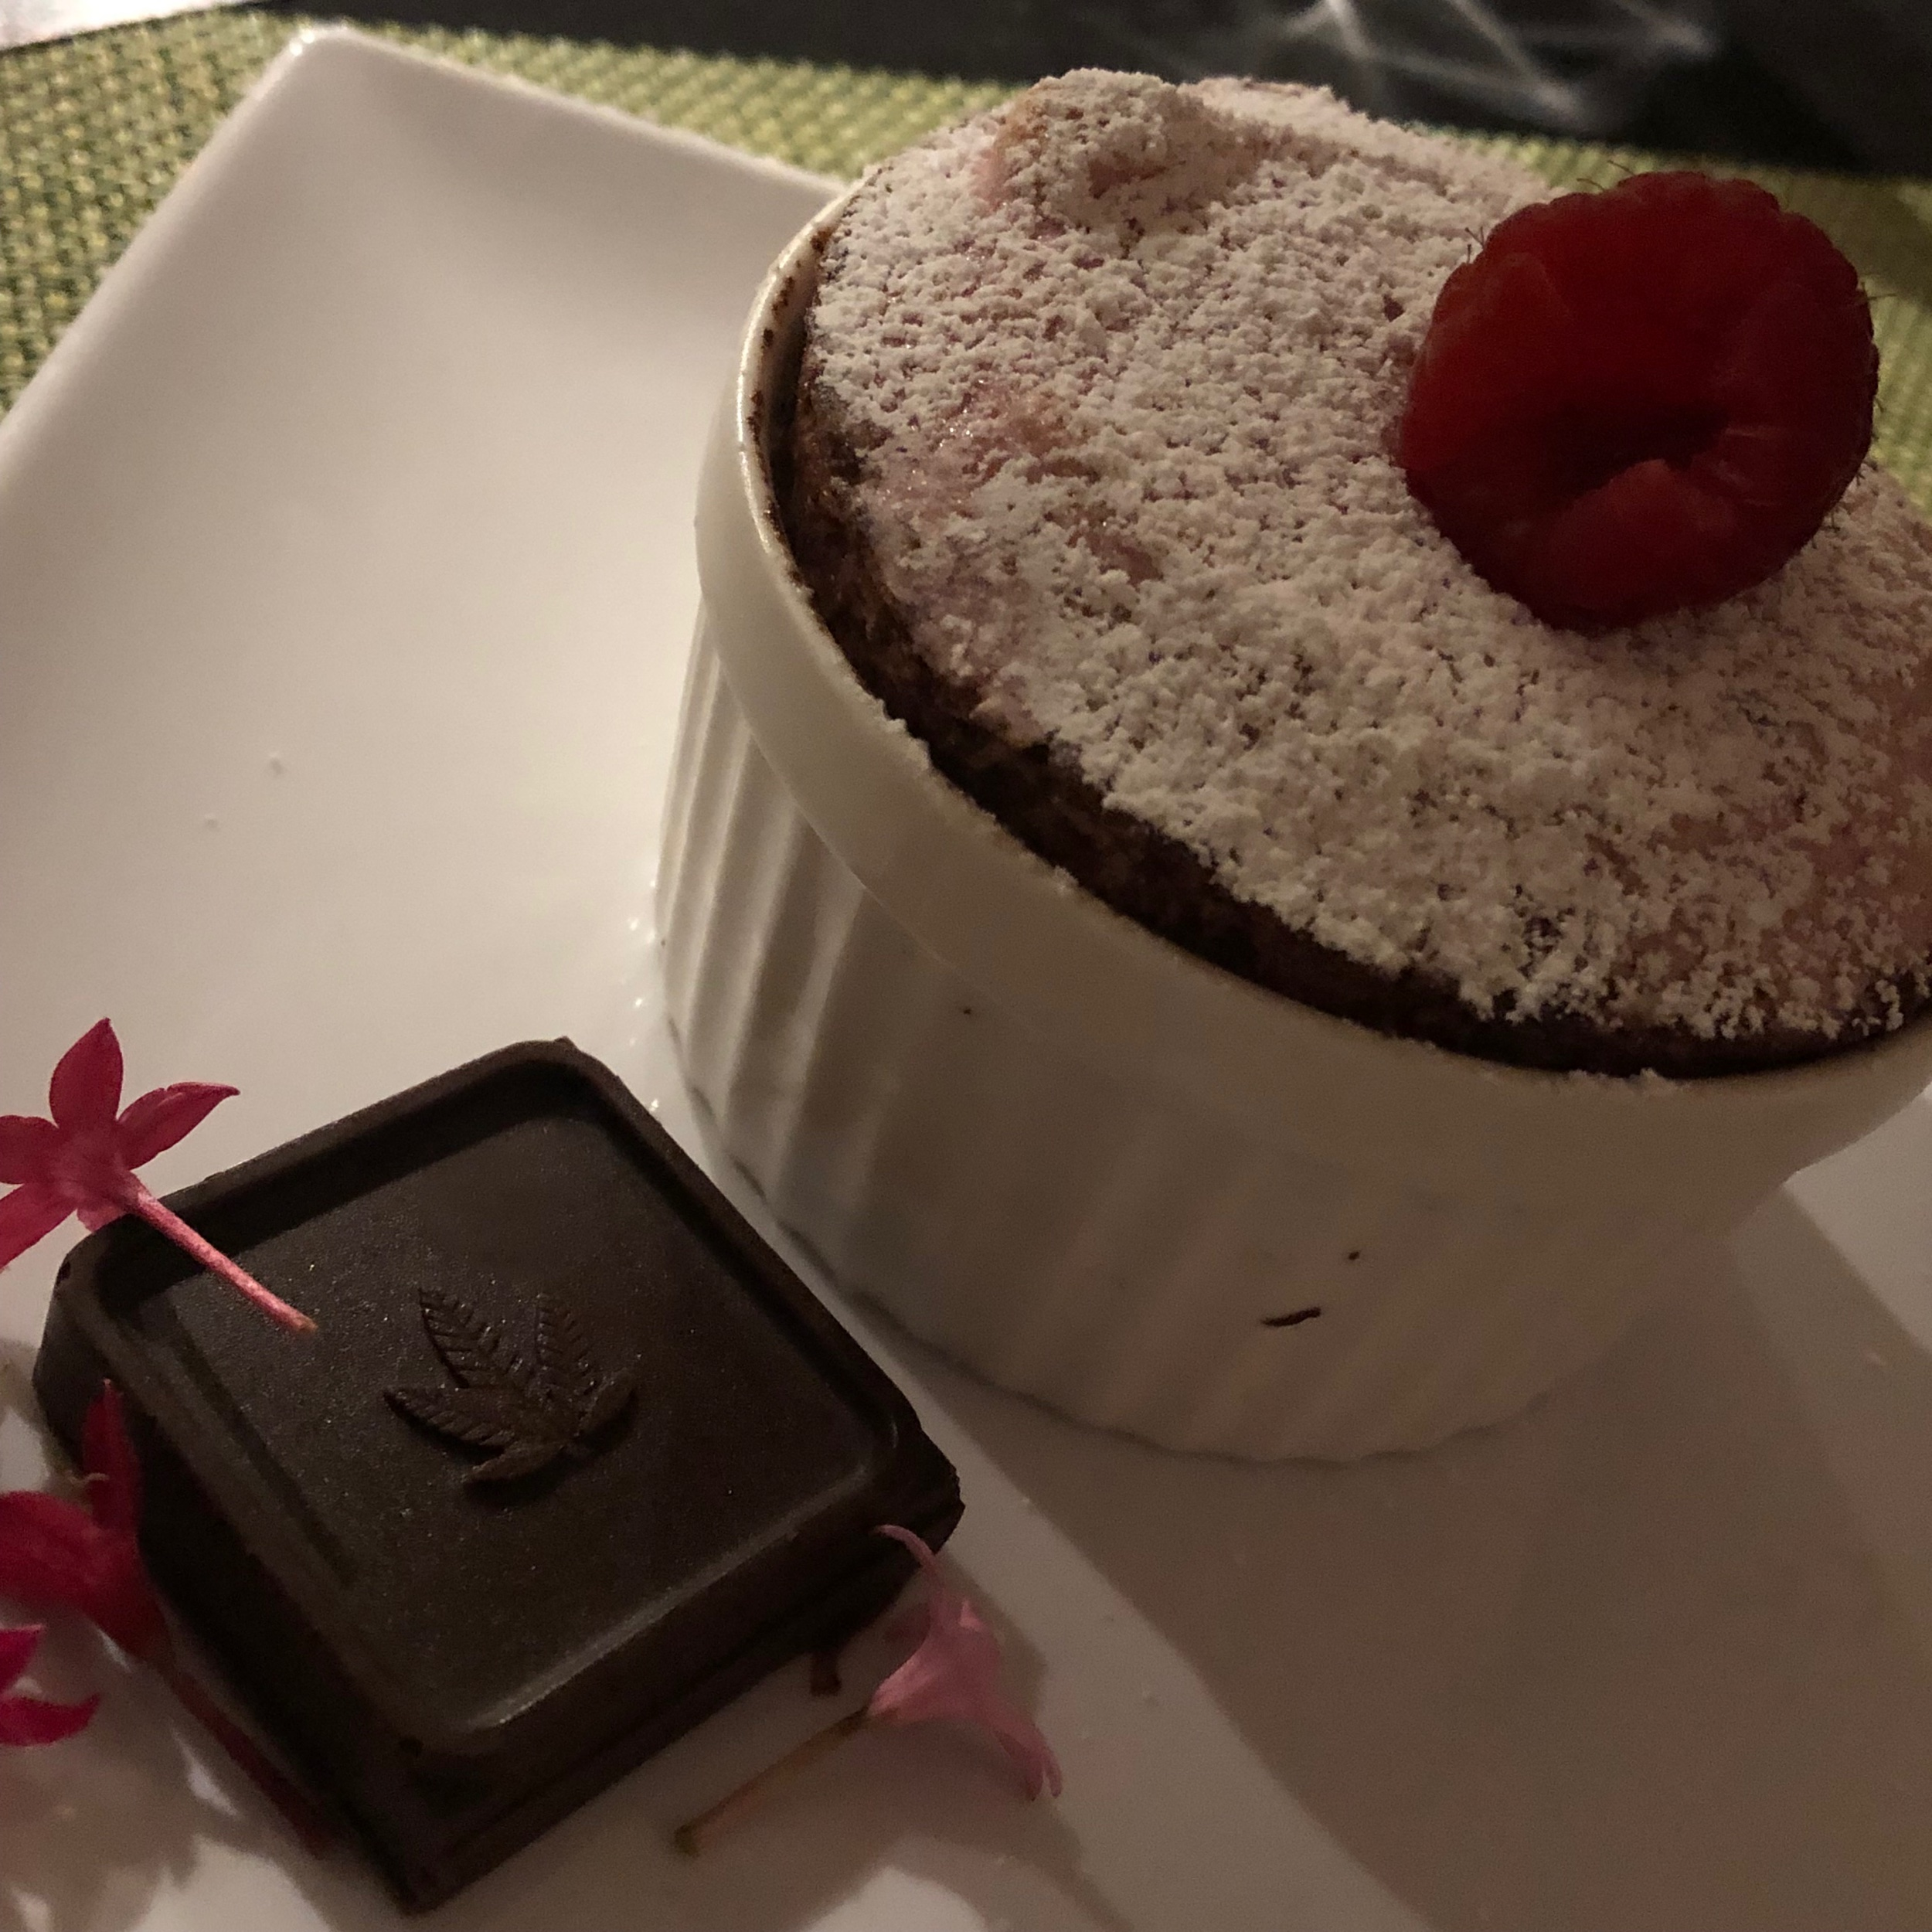 Mangia Ghanja's perfectly executed cloud-like raspberry soufflé with ganache square - all other desserts are entirely ruined for me after this one.